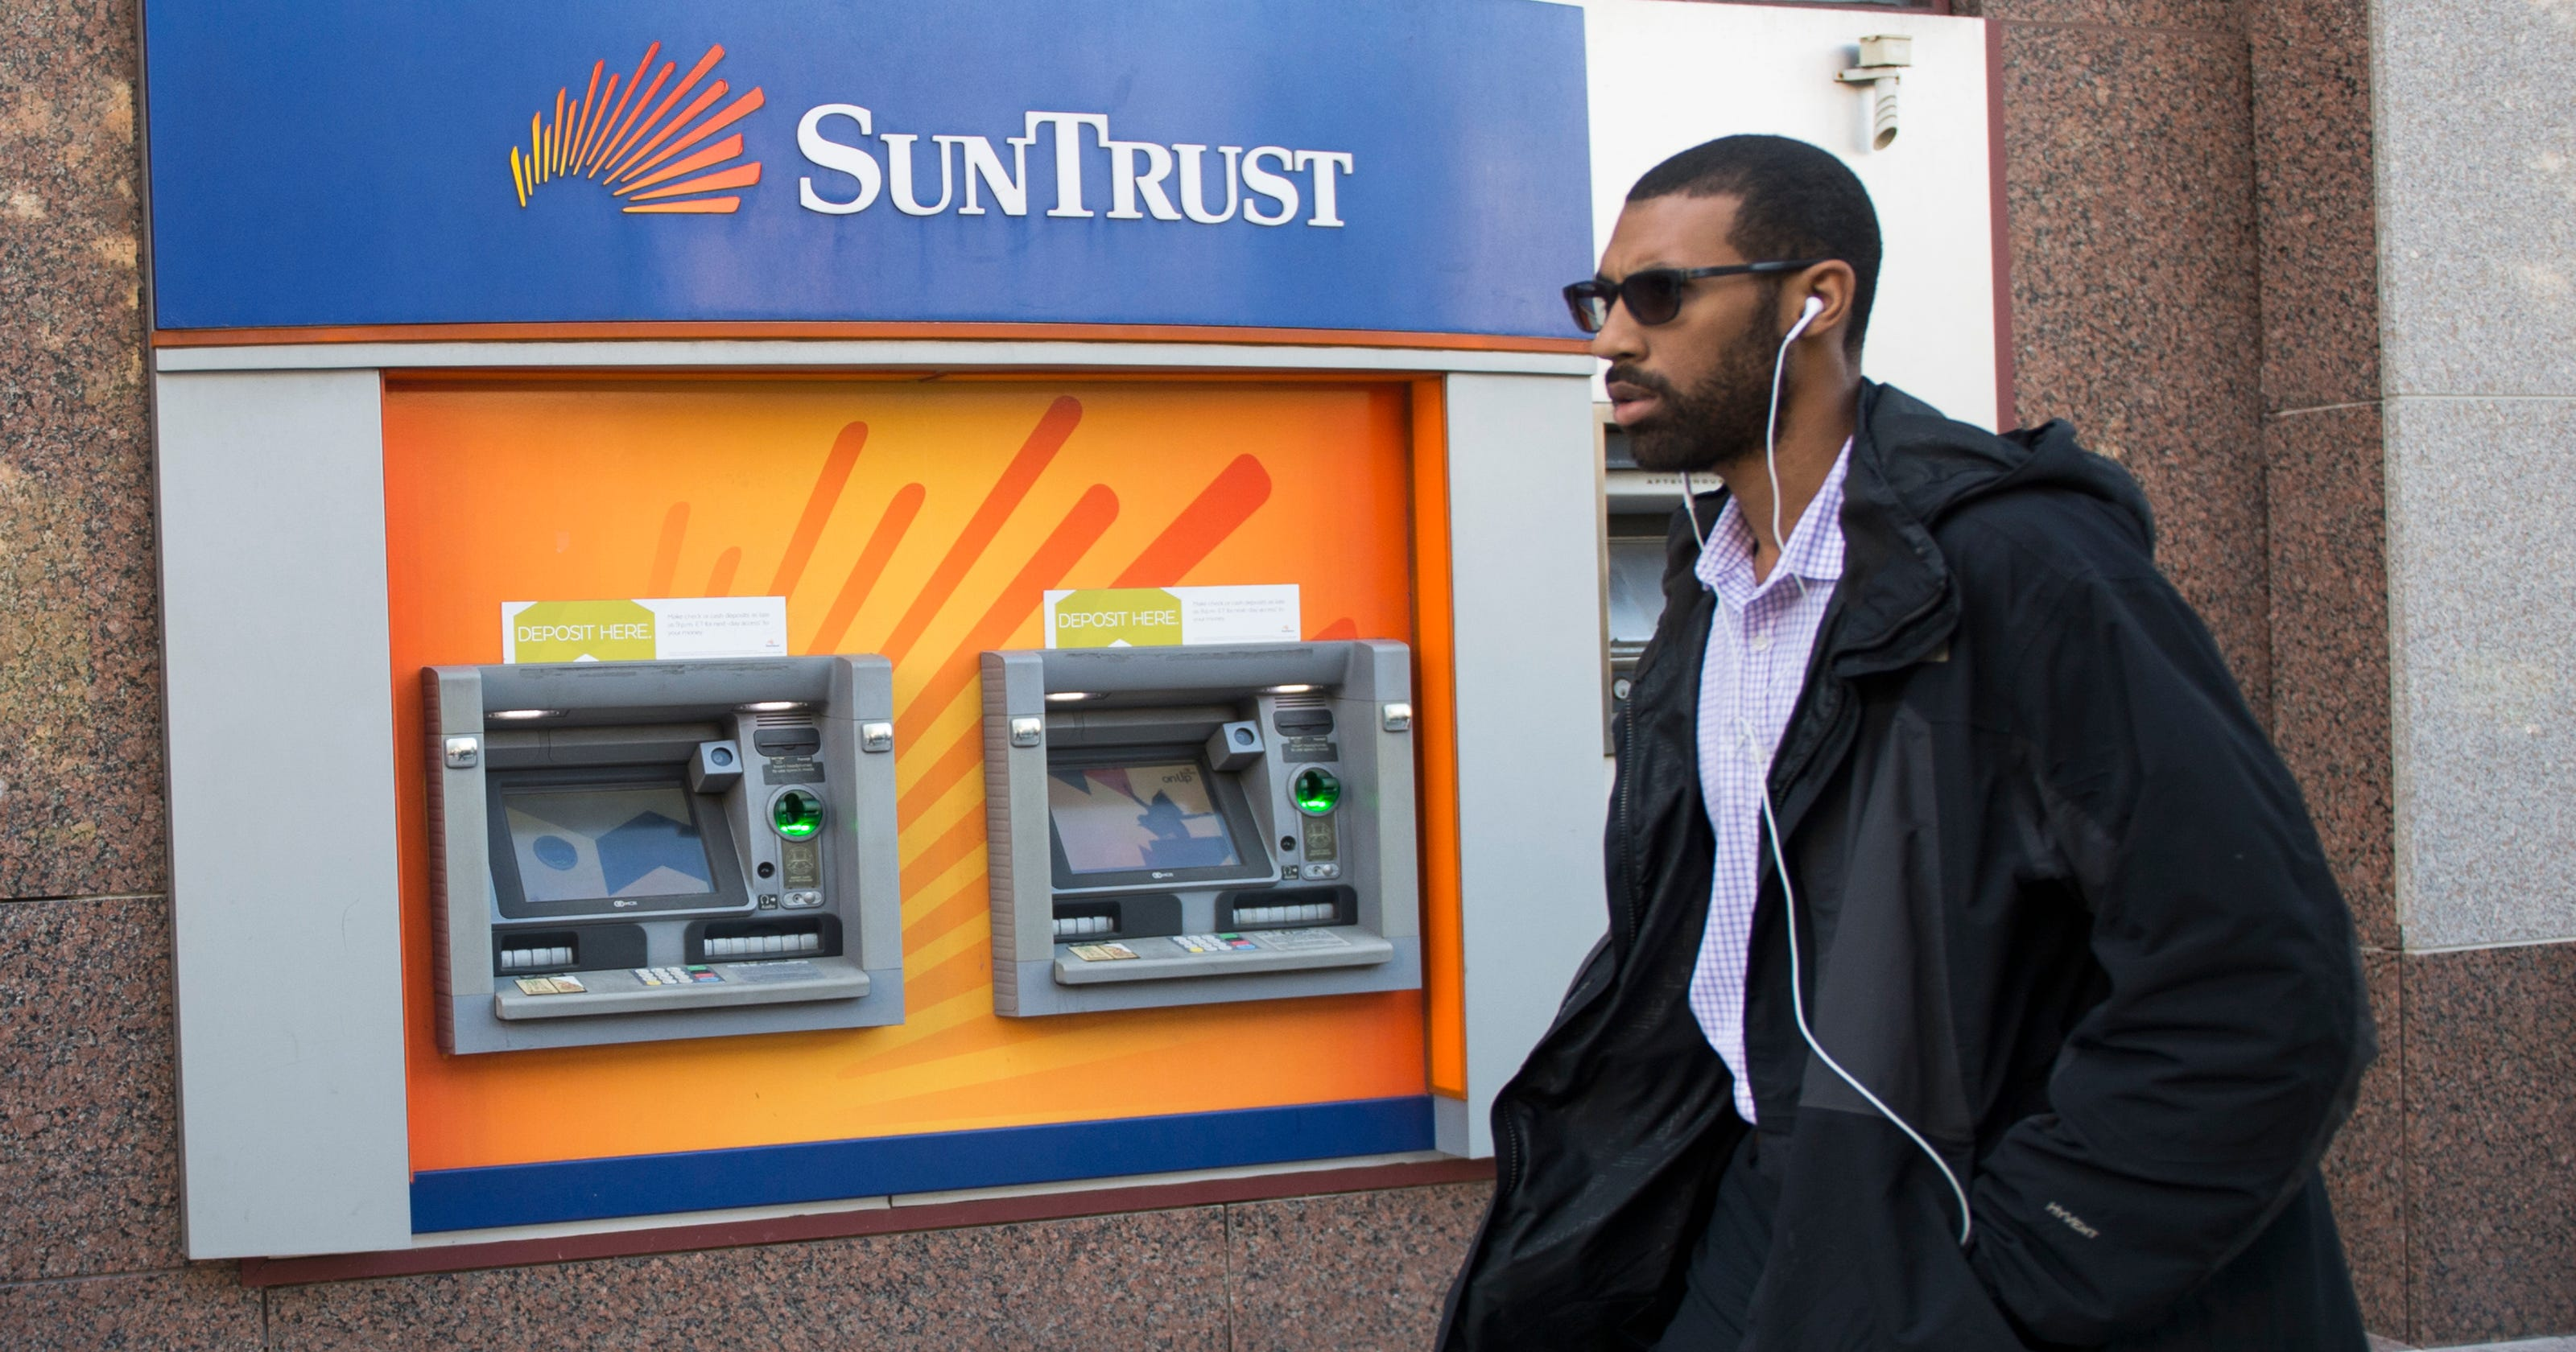 BB&T, SunTrust unveil name of new combined bank after their